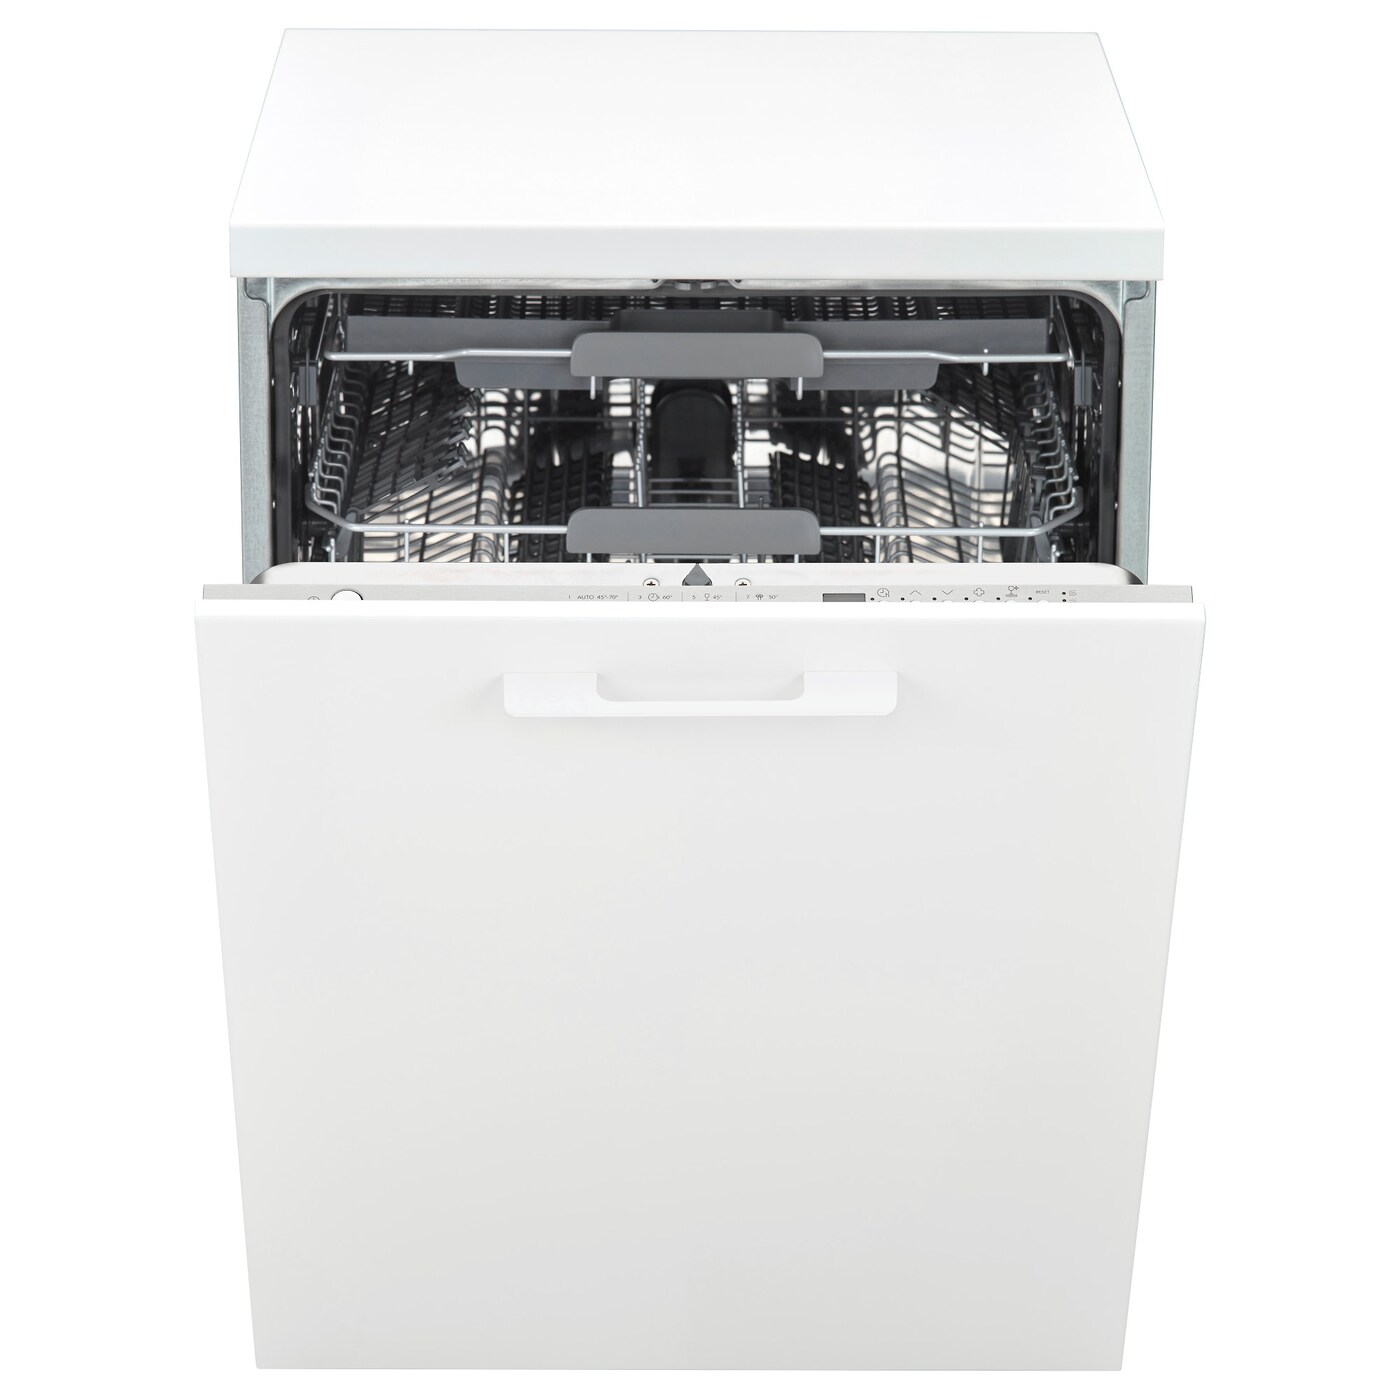 IKEA HYGIENISK integrated dishwasher A muffled sound signal indicates when a program is finished.